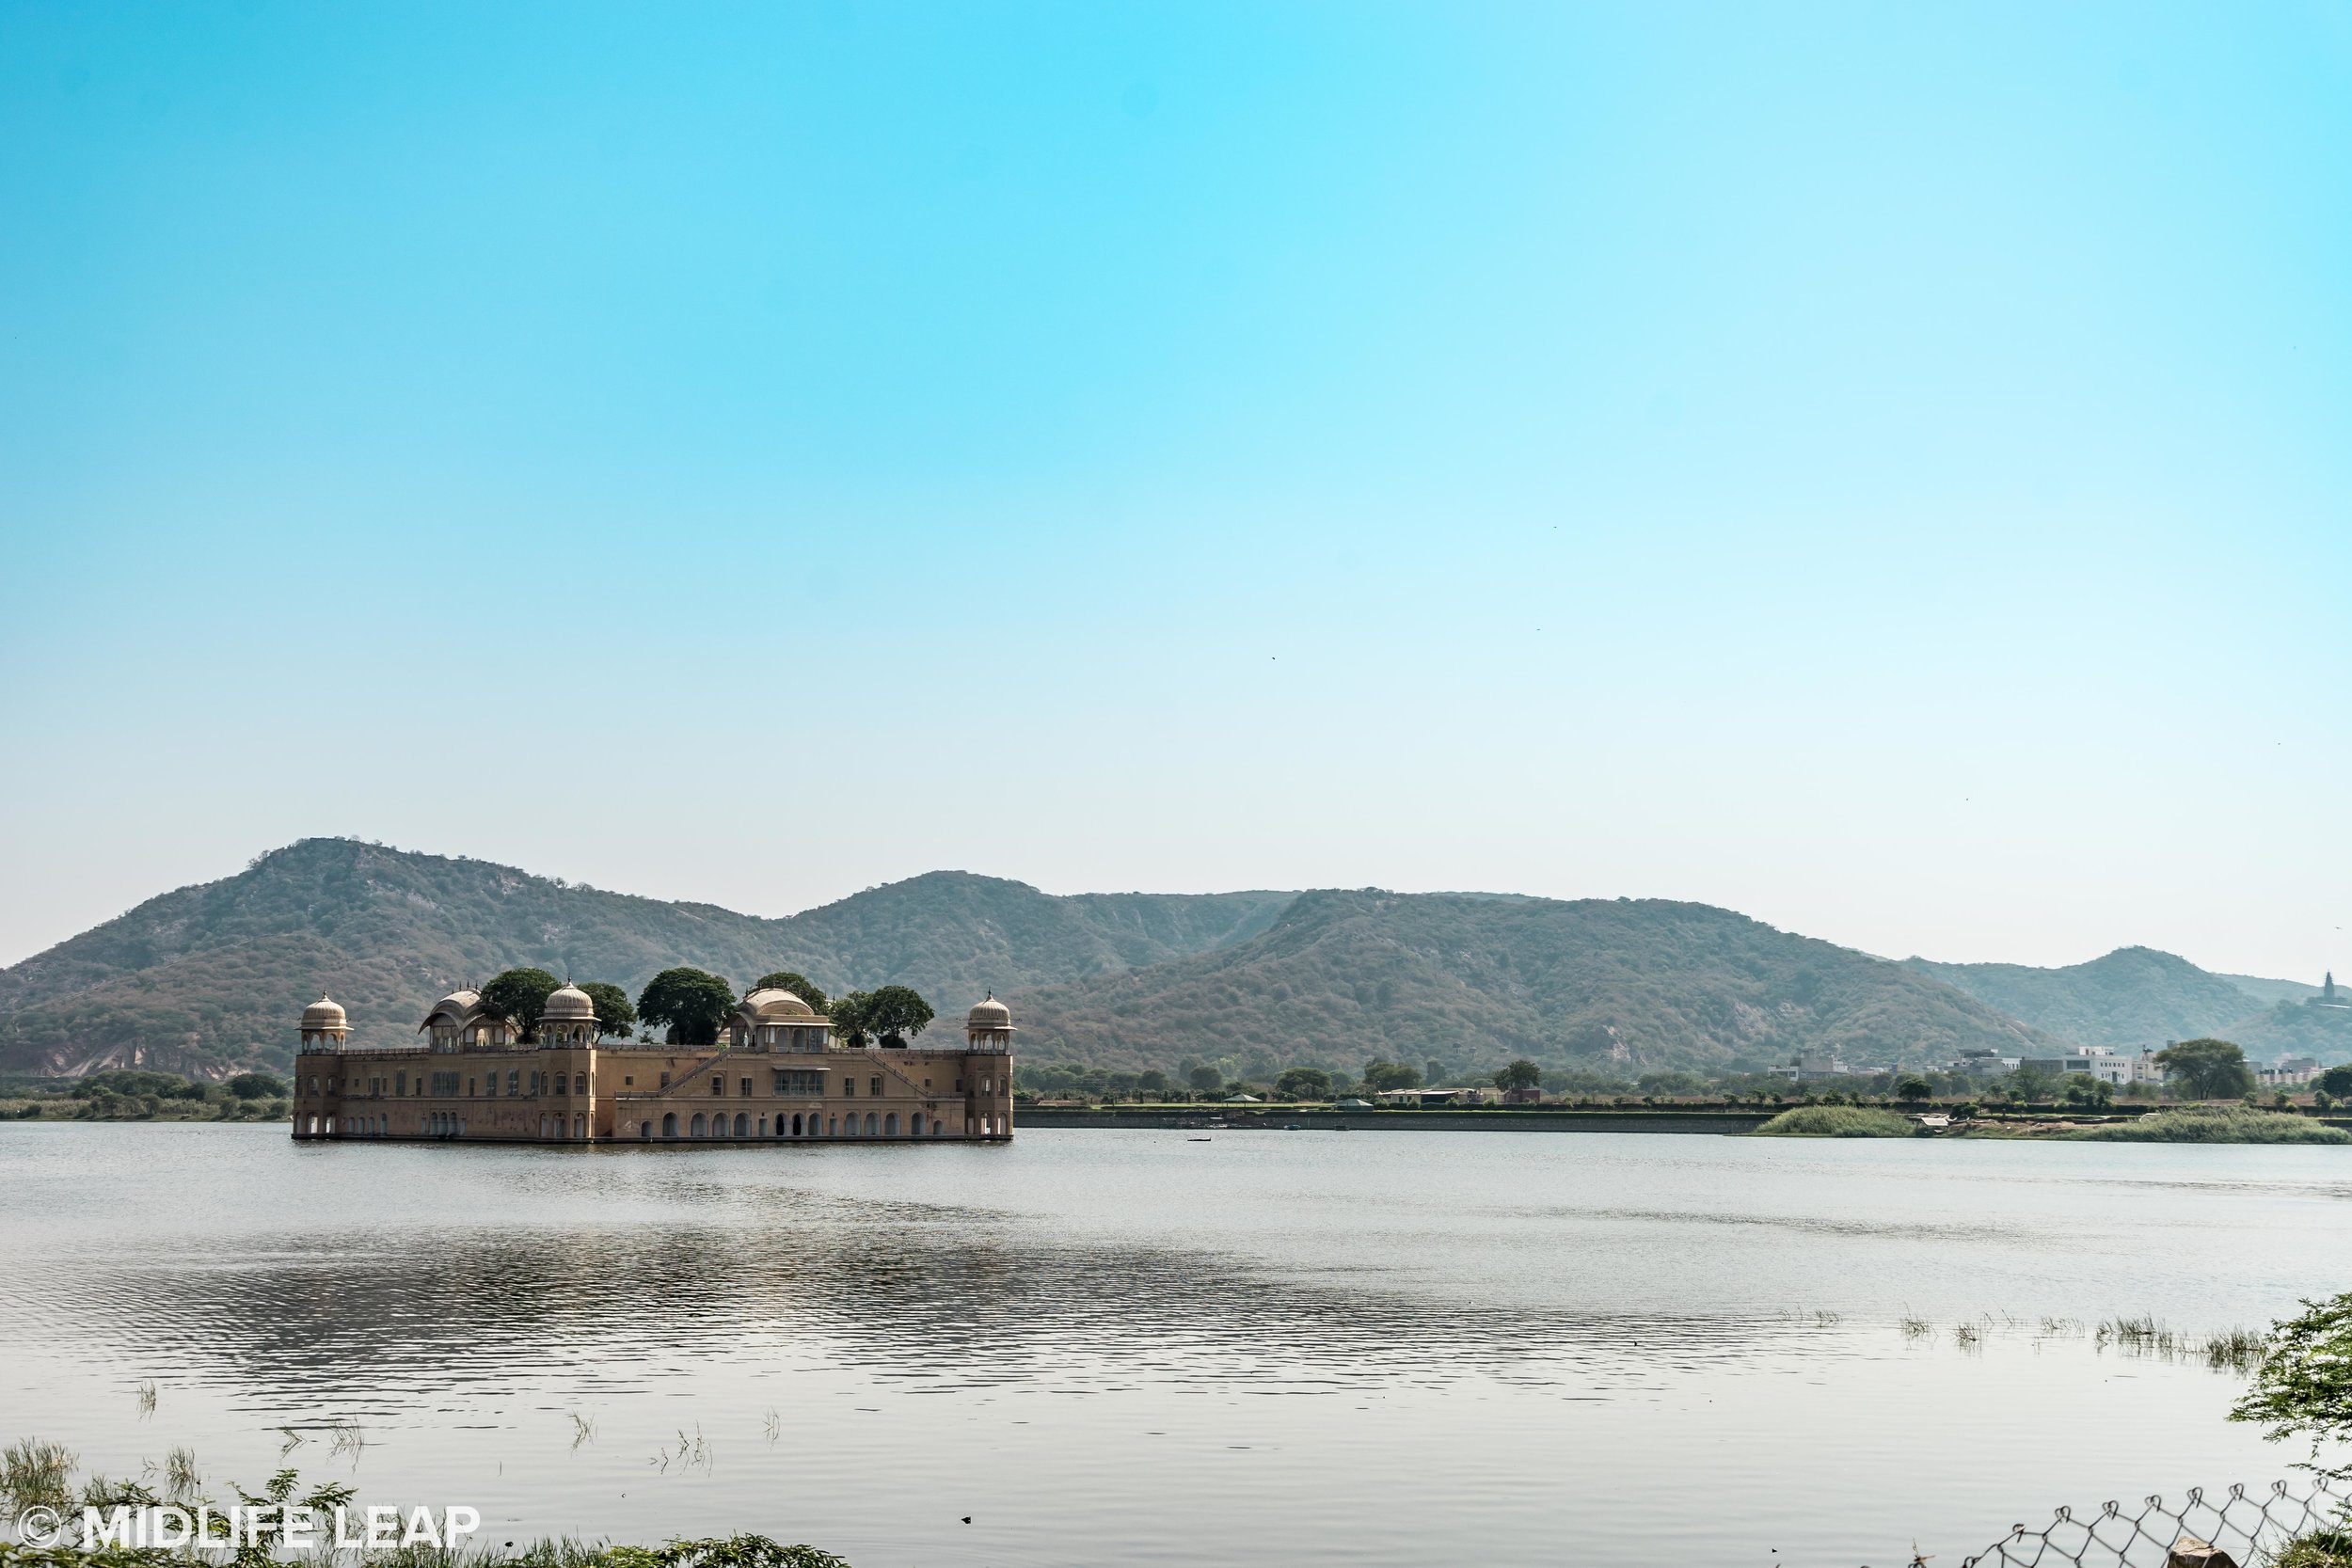 But Jaipur still had its beautiful moments, Jal Mahal